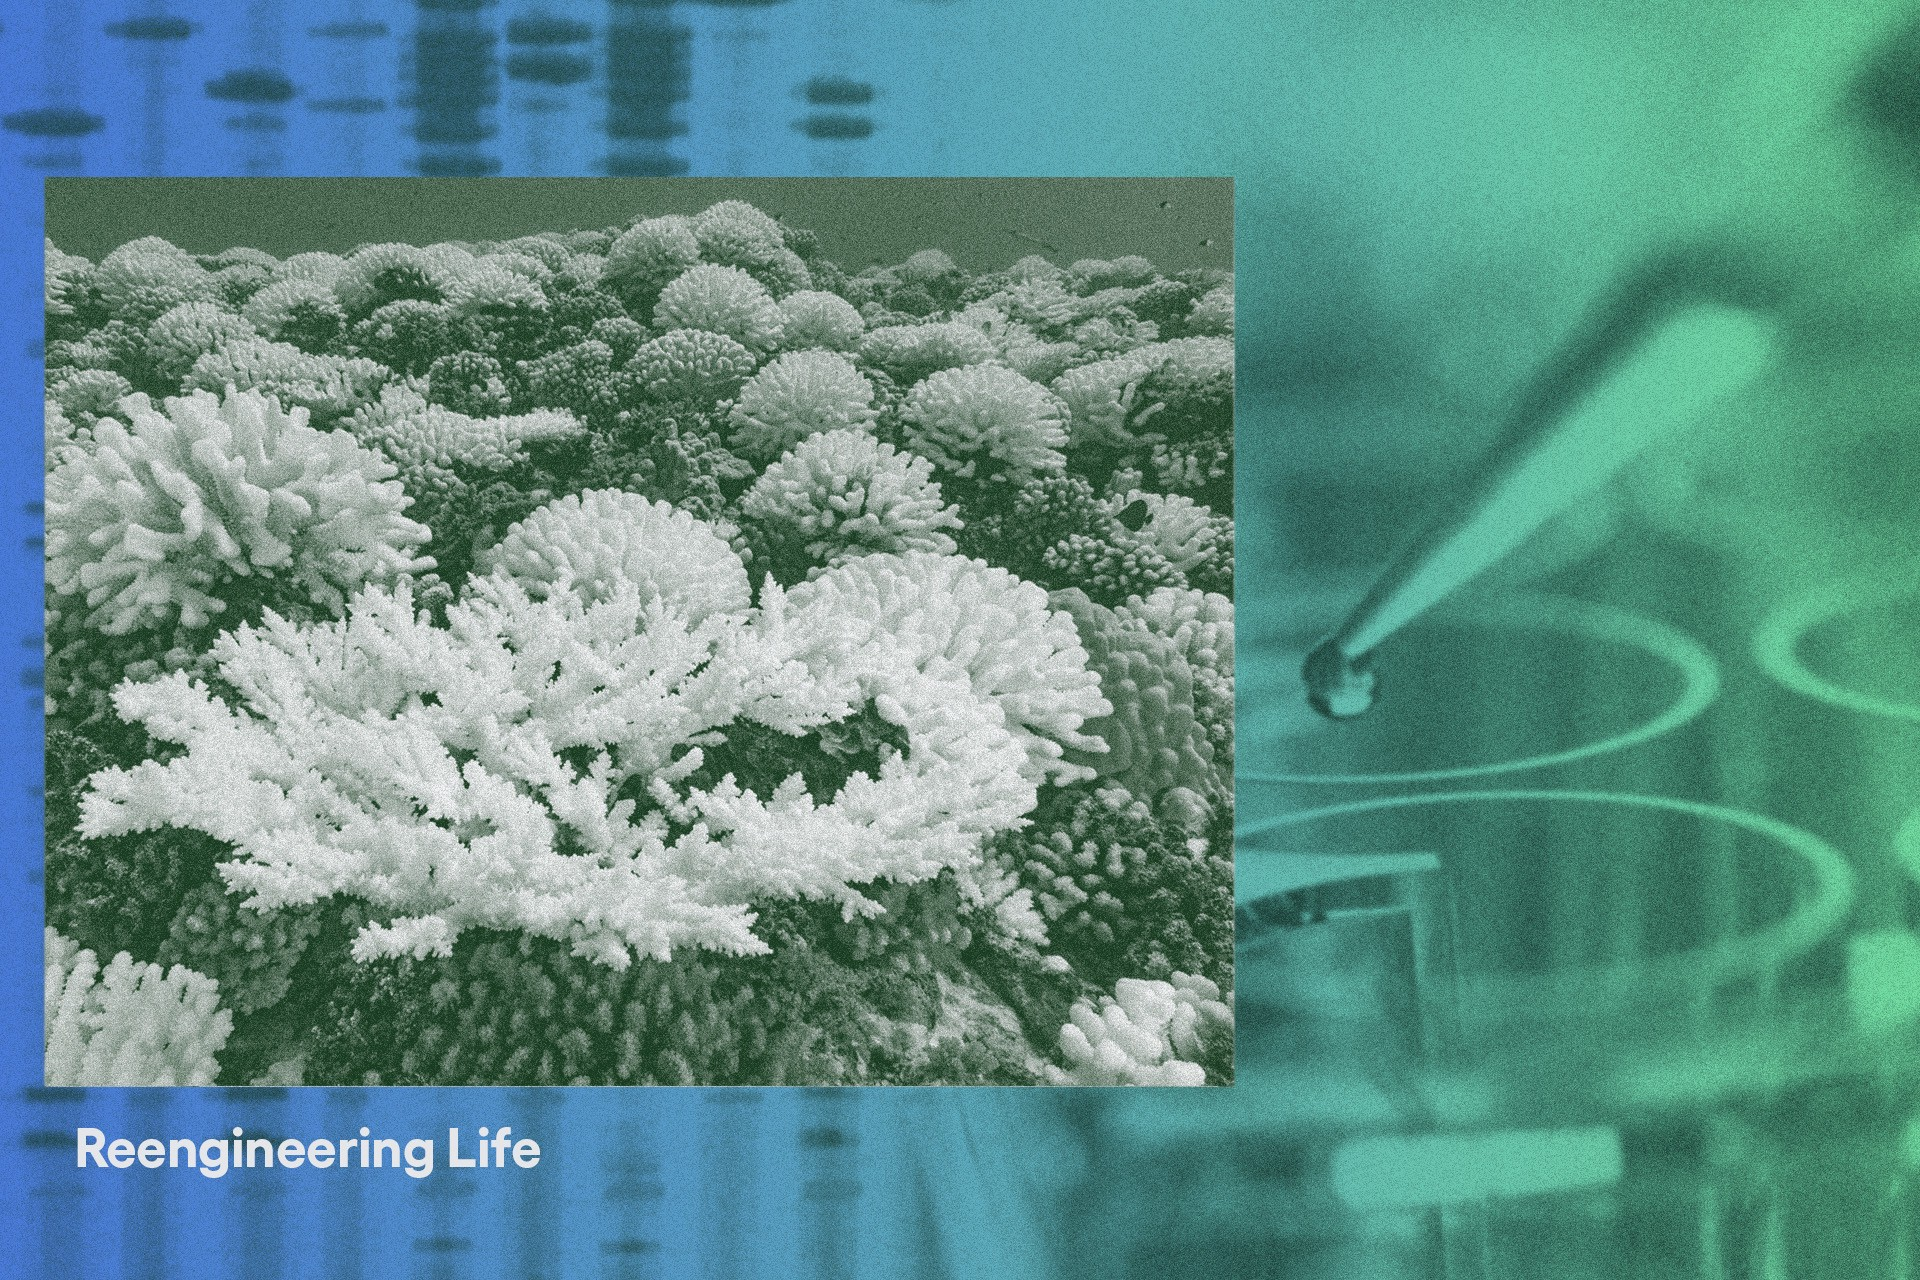 Filtered image of coral against a background of pipette and DNA.